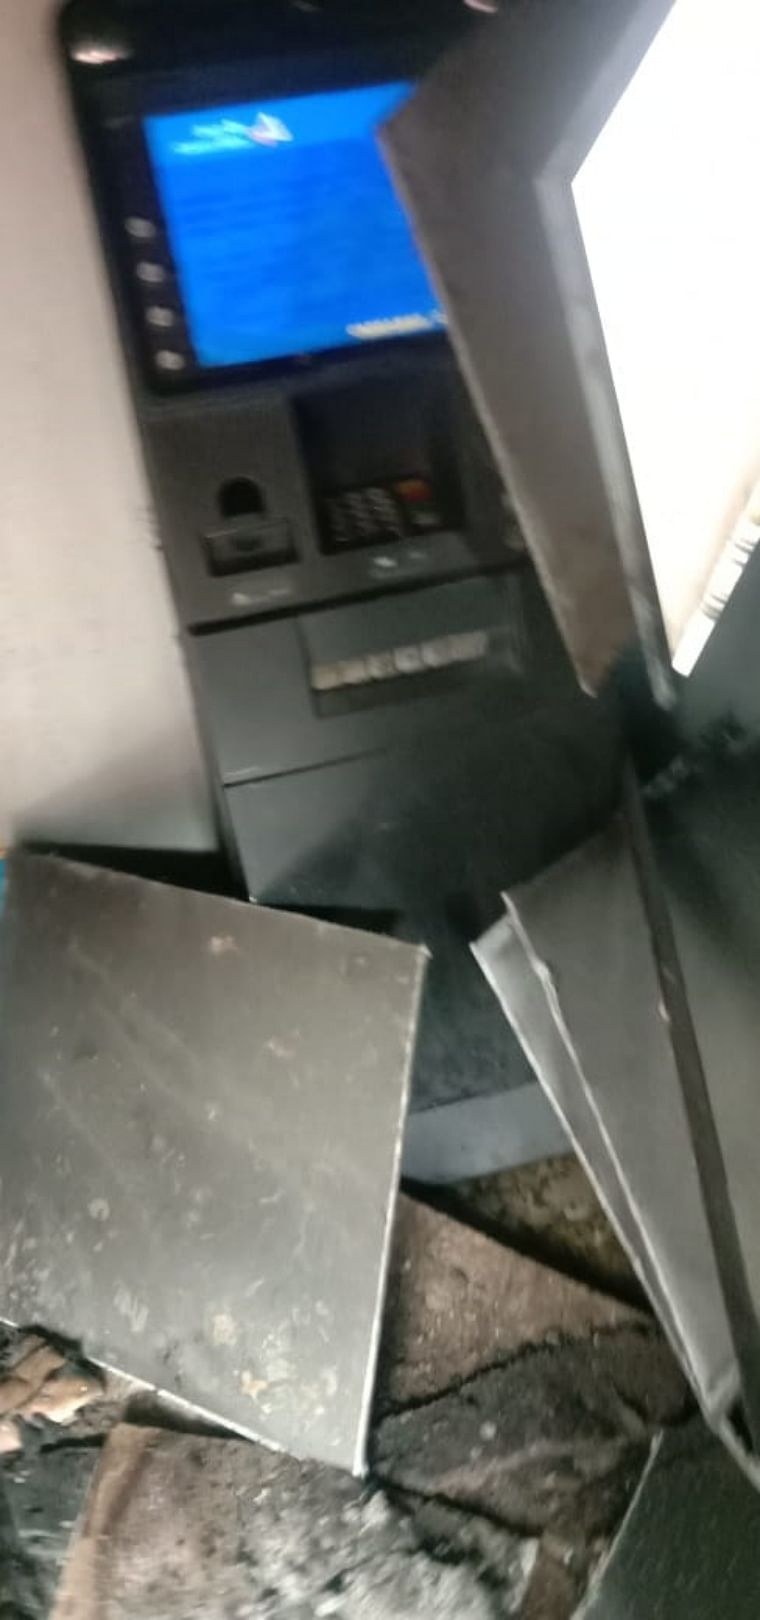 Bhayander: Fire at ATM kiosk, cash worth Rs 22 lakh intact